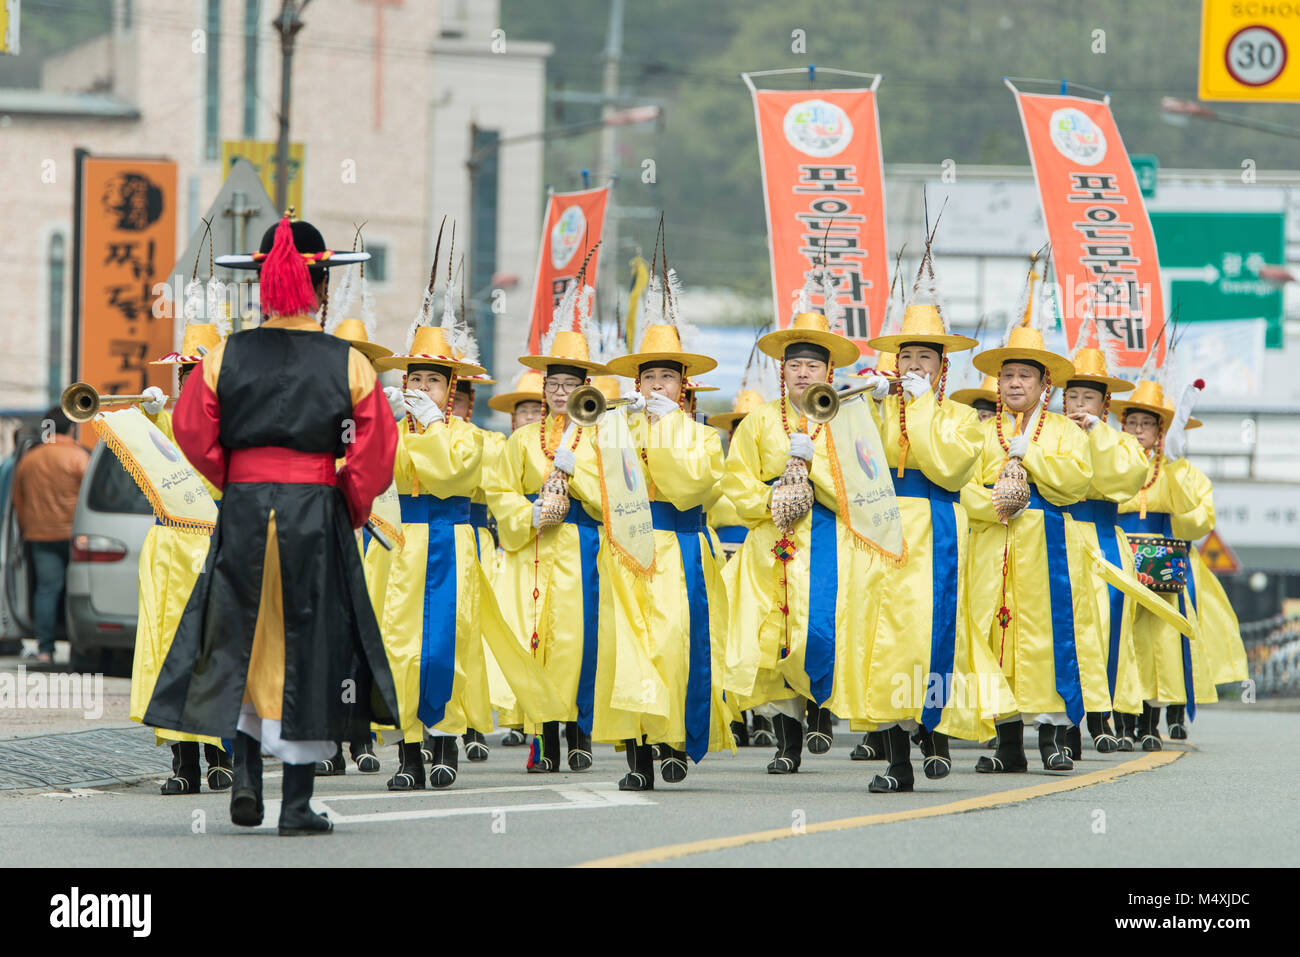 The farmers dance occurred to celebrate the harvest in Korea. Stock Photo